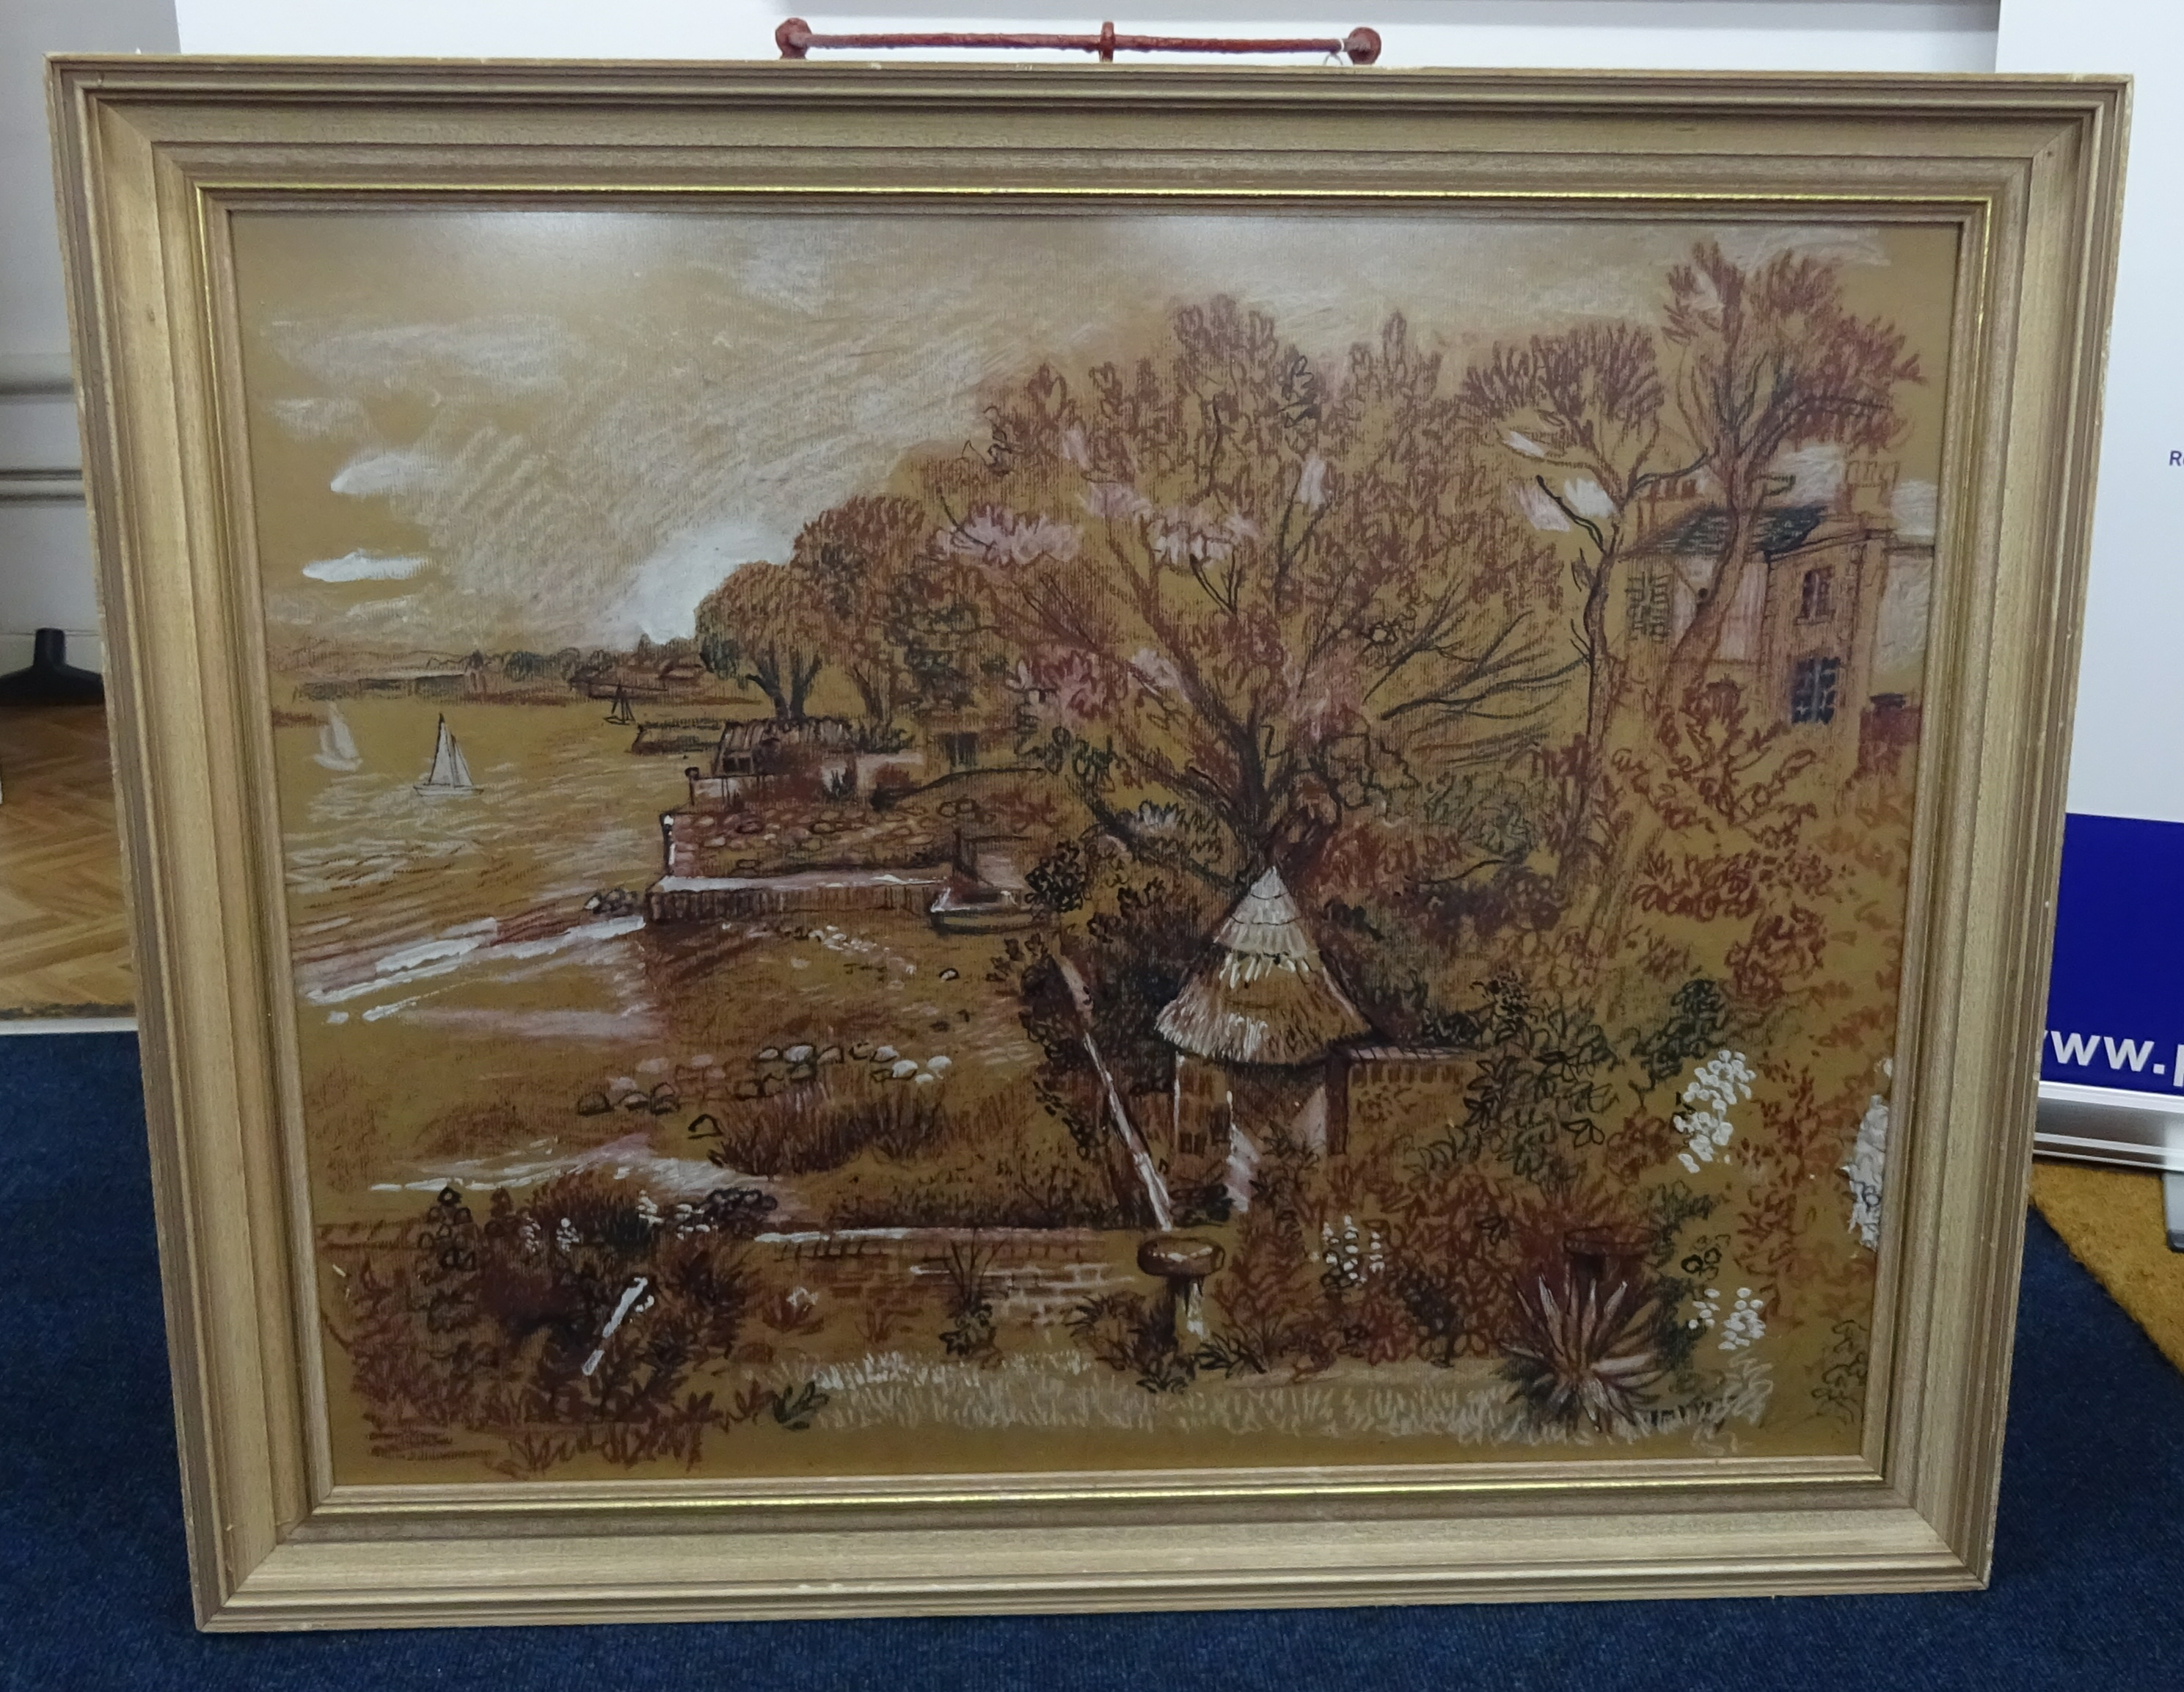 Lot 018 - Fred Yates (1922-2008) mixed media, river scene, signed, framed and glazed, 70cm x 78cm.